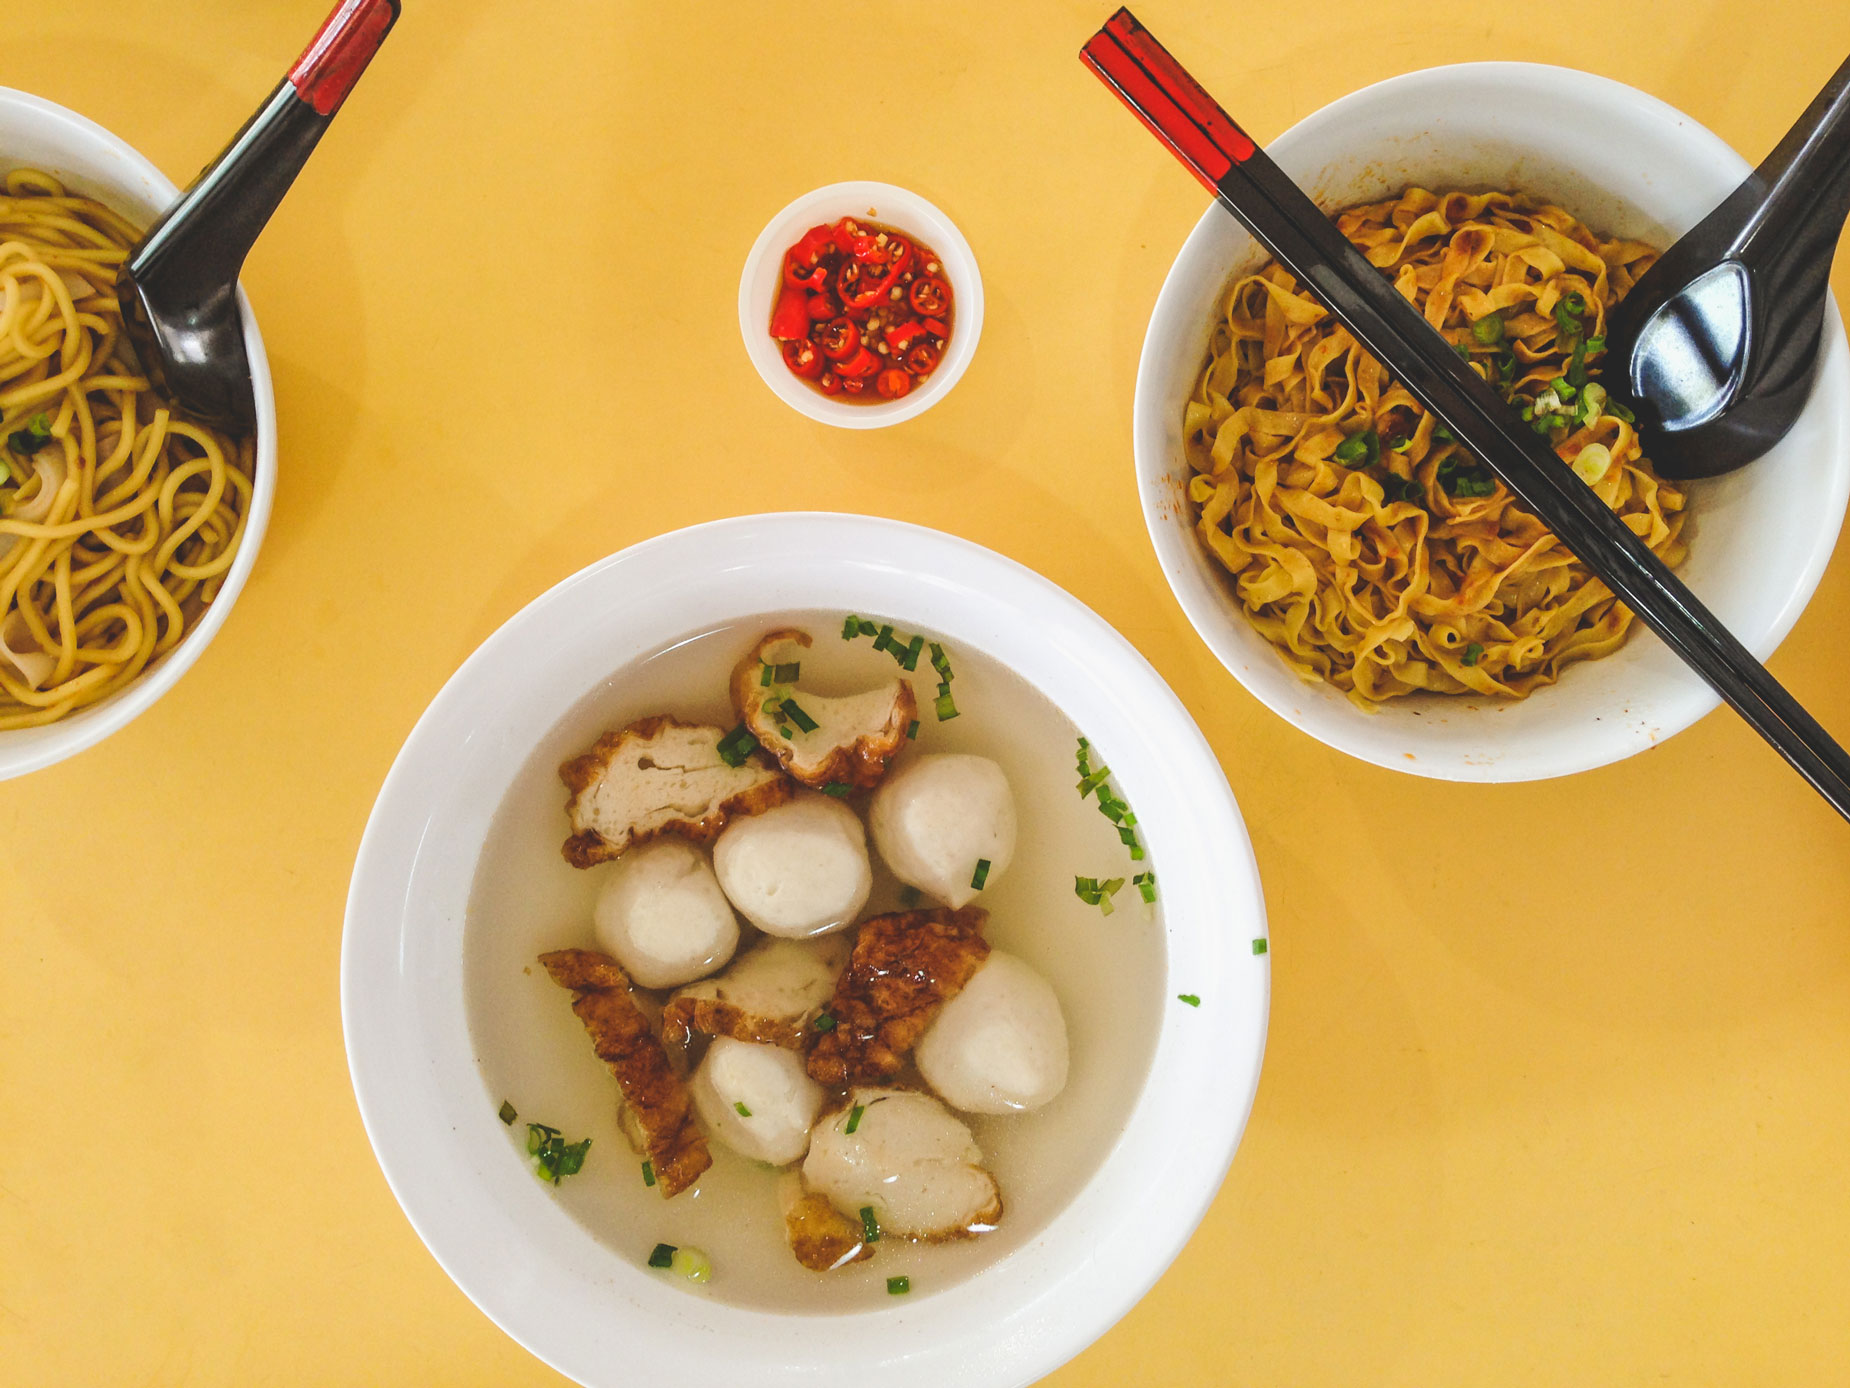 Bowls of Singaporean noodles and soup on a bright yellow table.